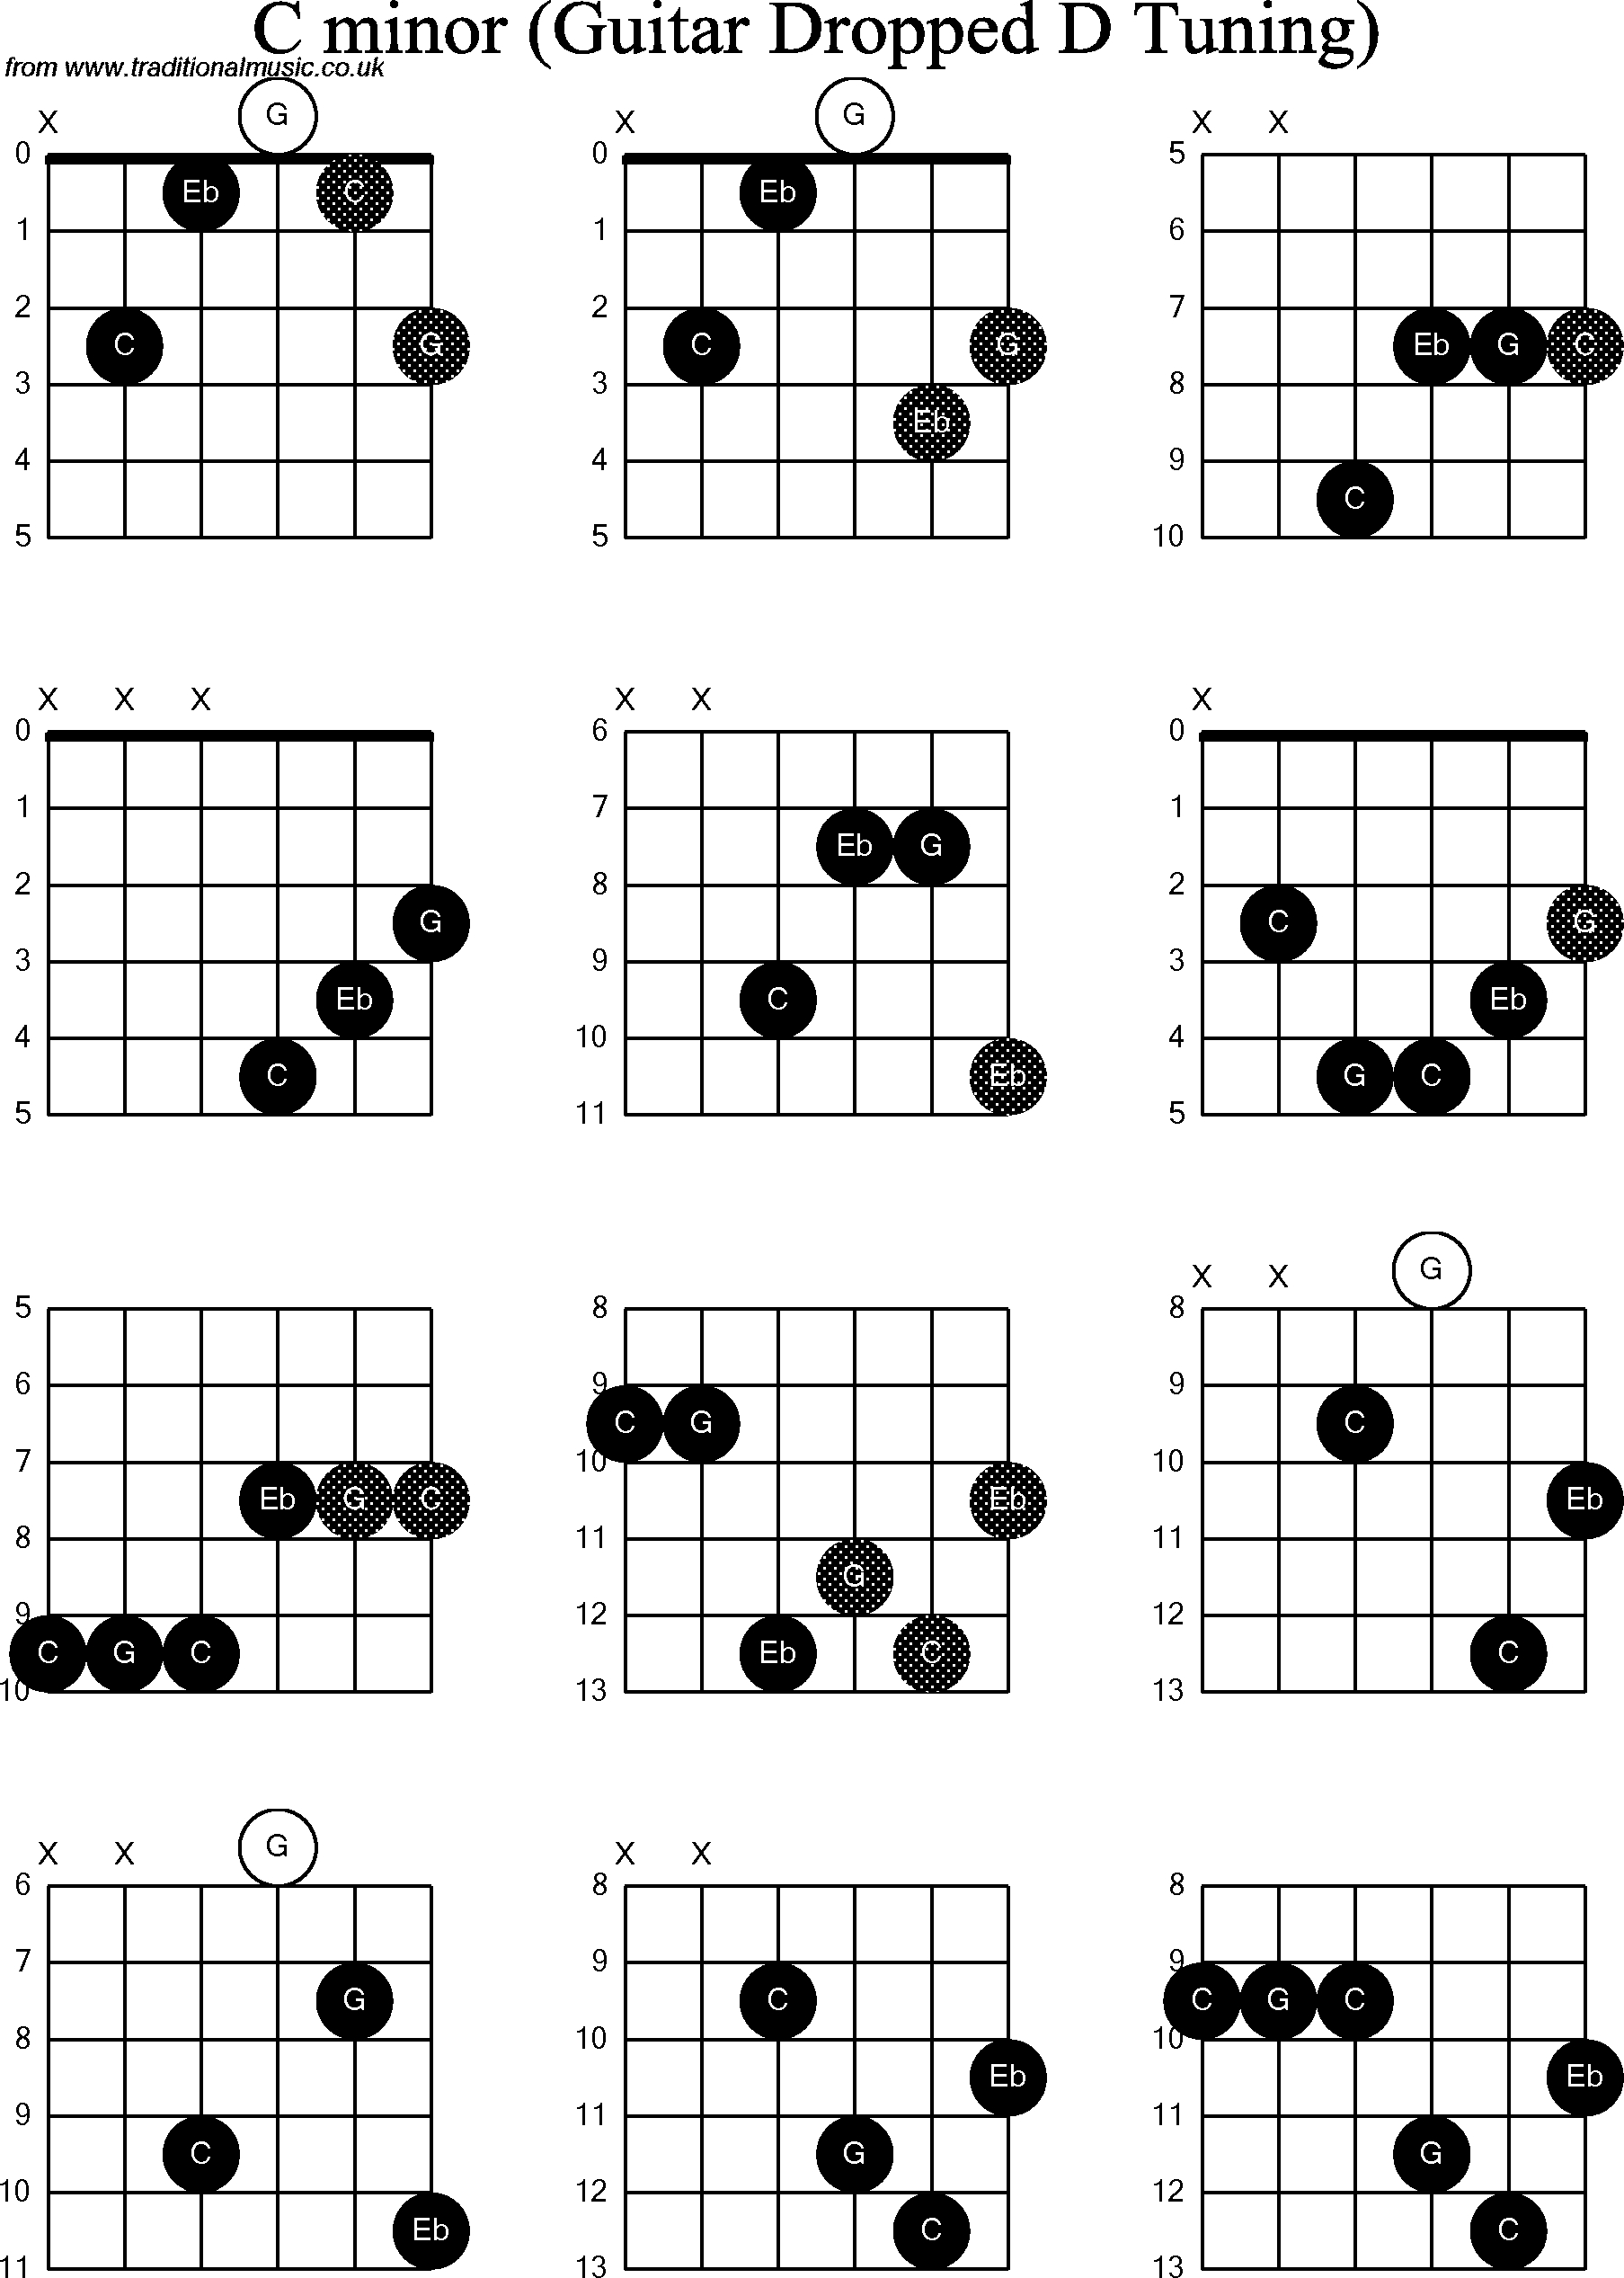 C Chord Guitar Chord Diagrams For Dropped D Guitardadgbe C Minor